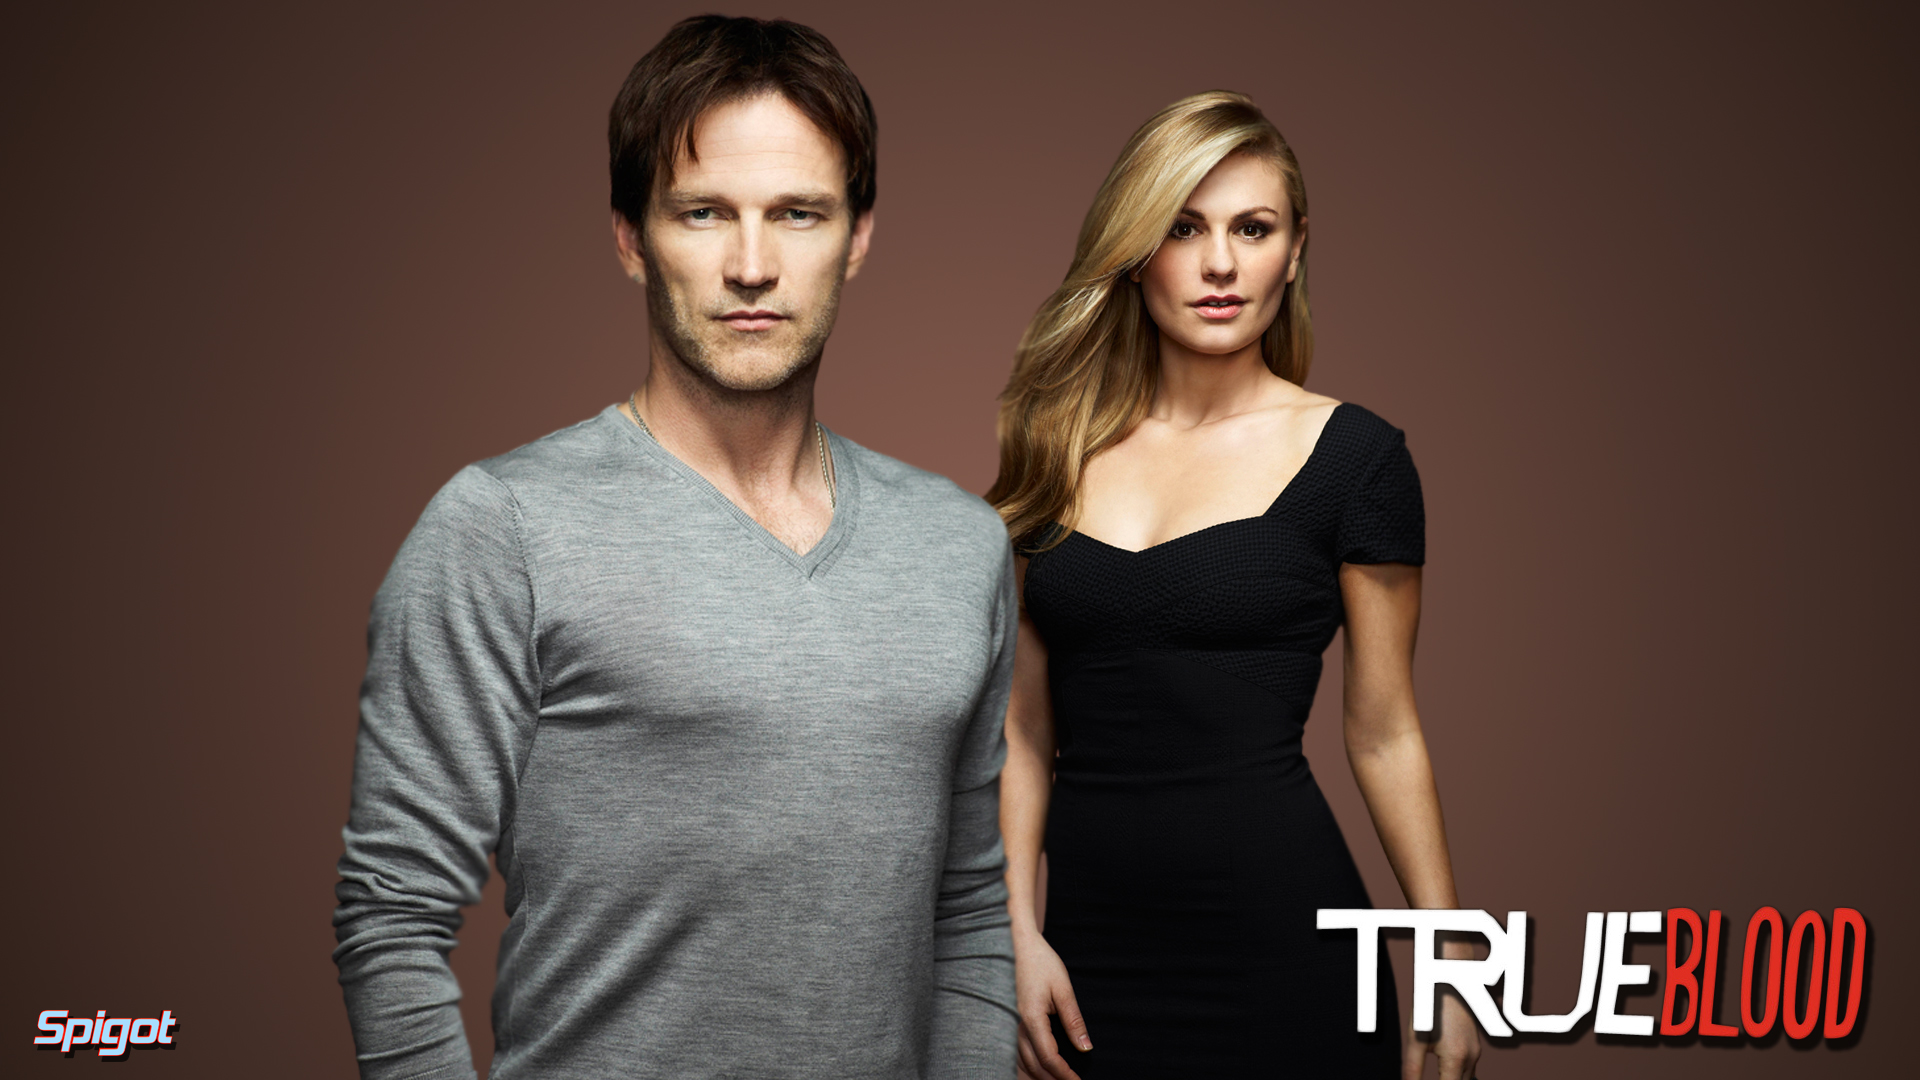 A Few More True Blood Wallpapers Advertisements